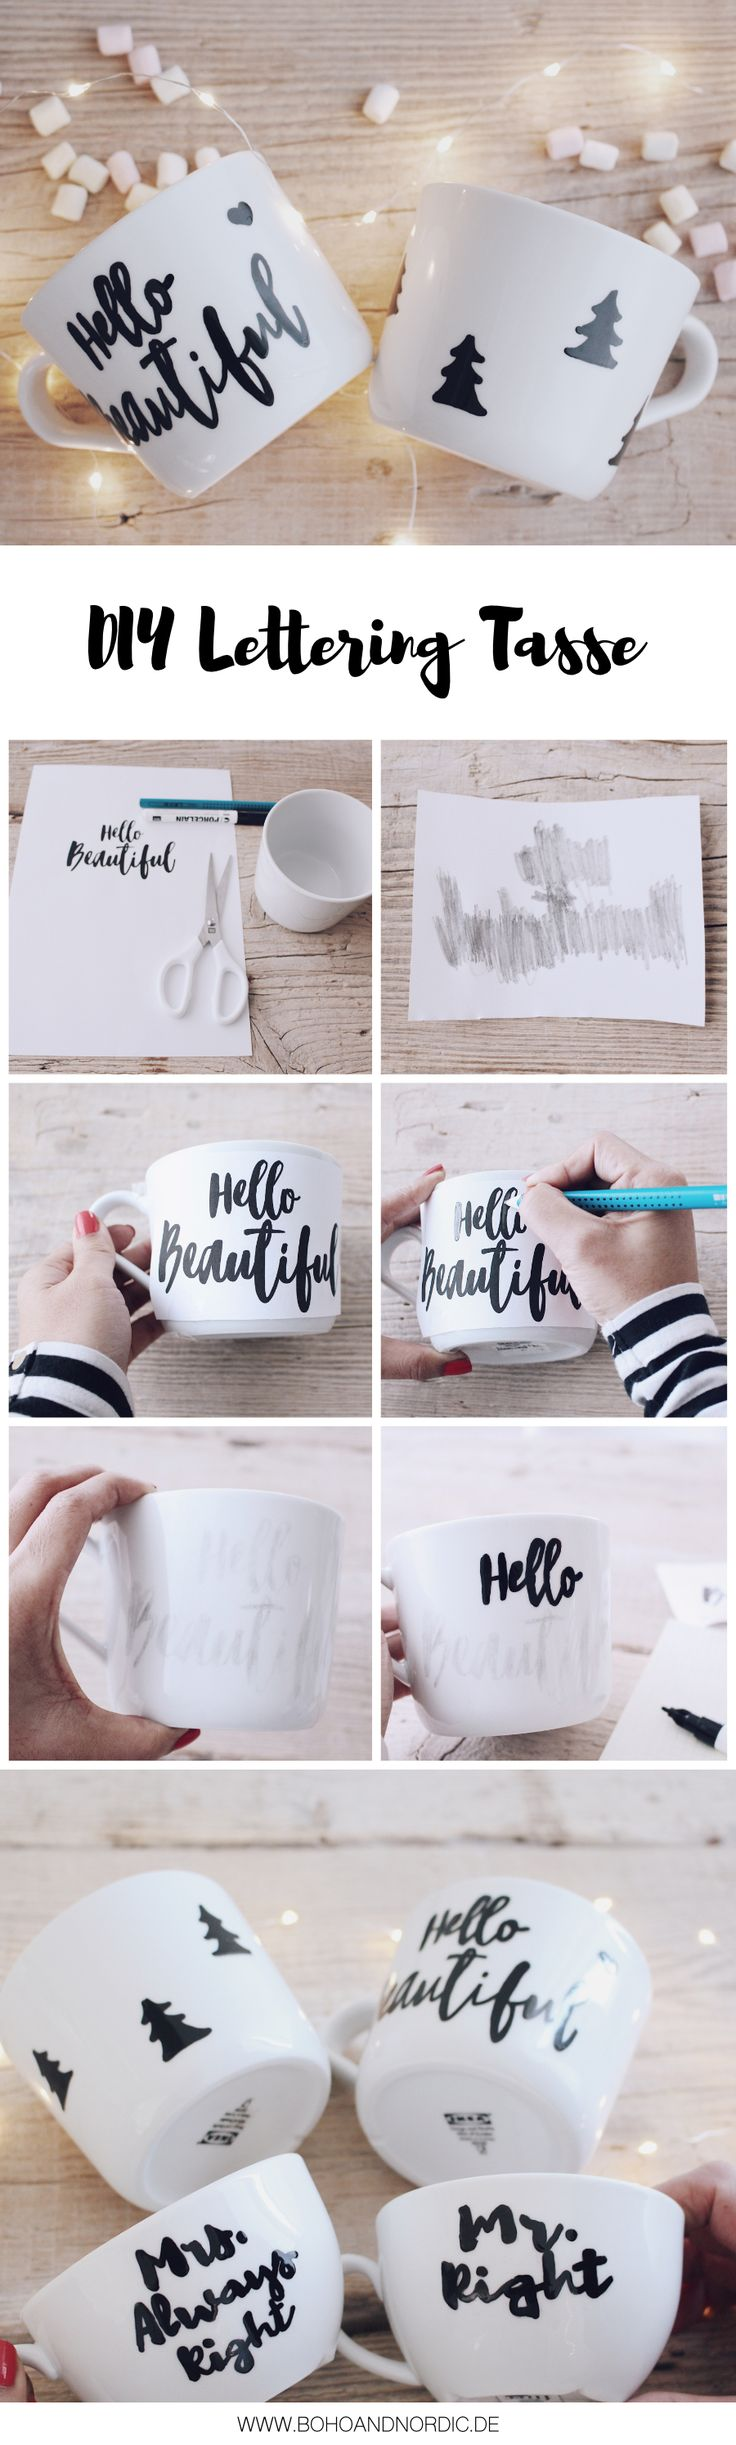 25 unique diy mugs ideas on pinterest mug decorating mug art and sharpie mugs. Black Bedroom Furniture Sets. Home Design Ideas